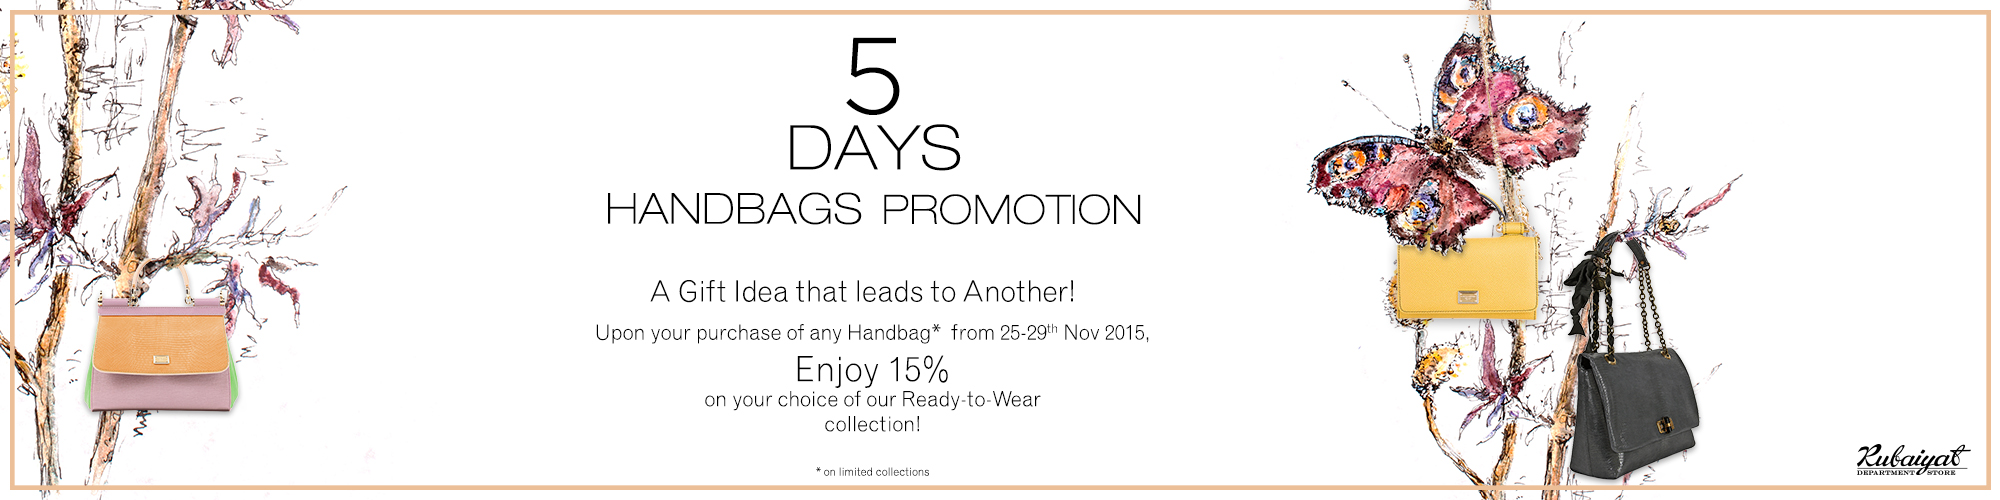 Handbag-Promotion-02-Web-Banner